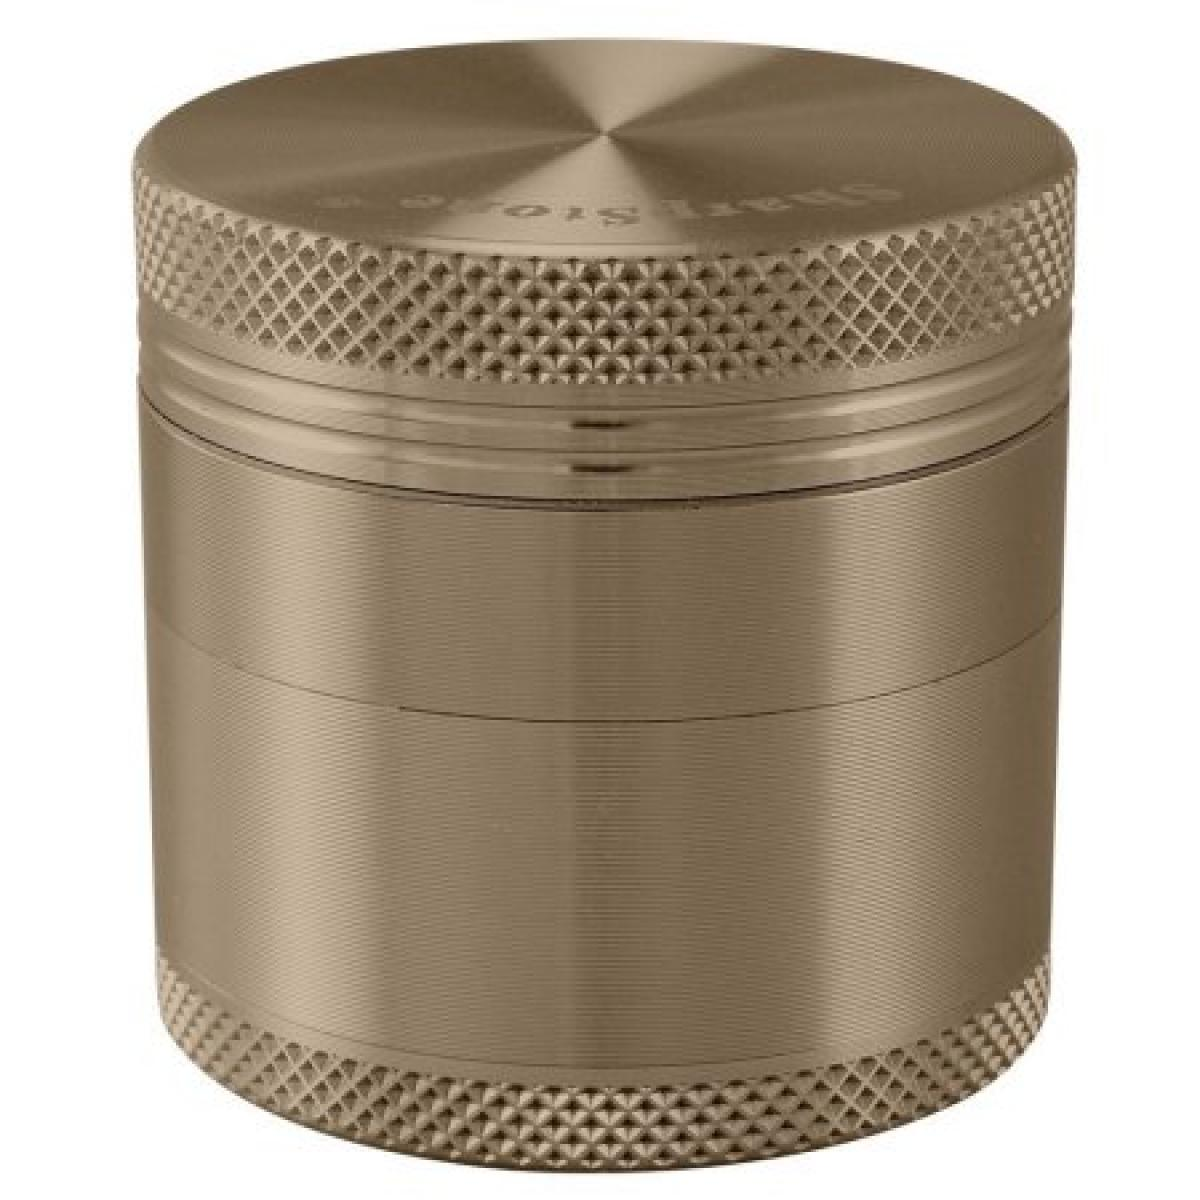 4-Layer Grinder Small